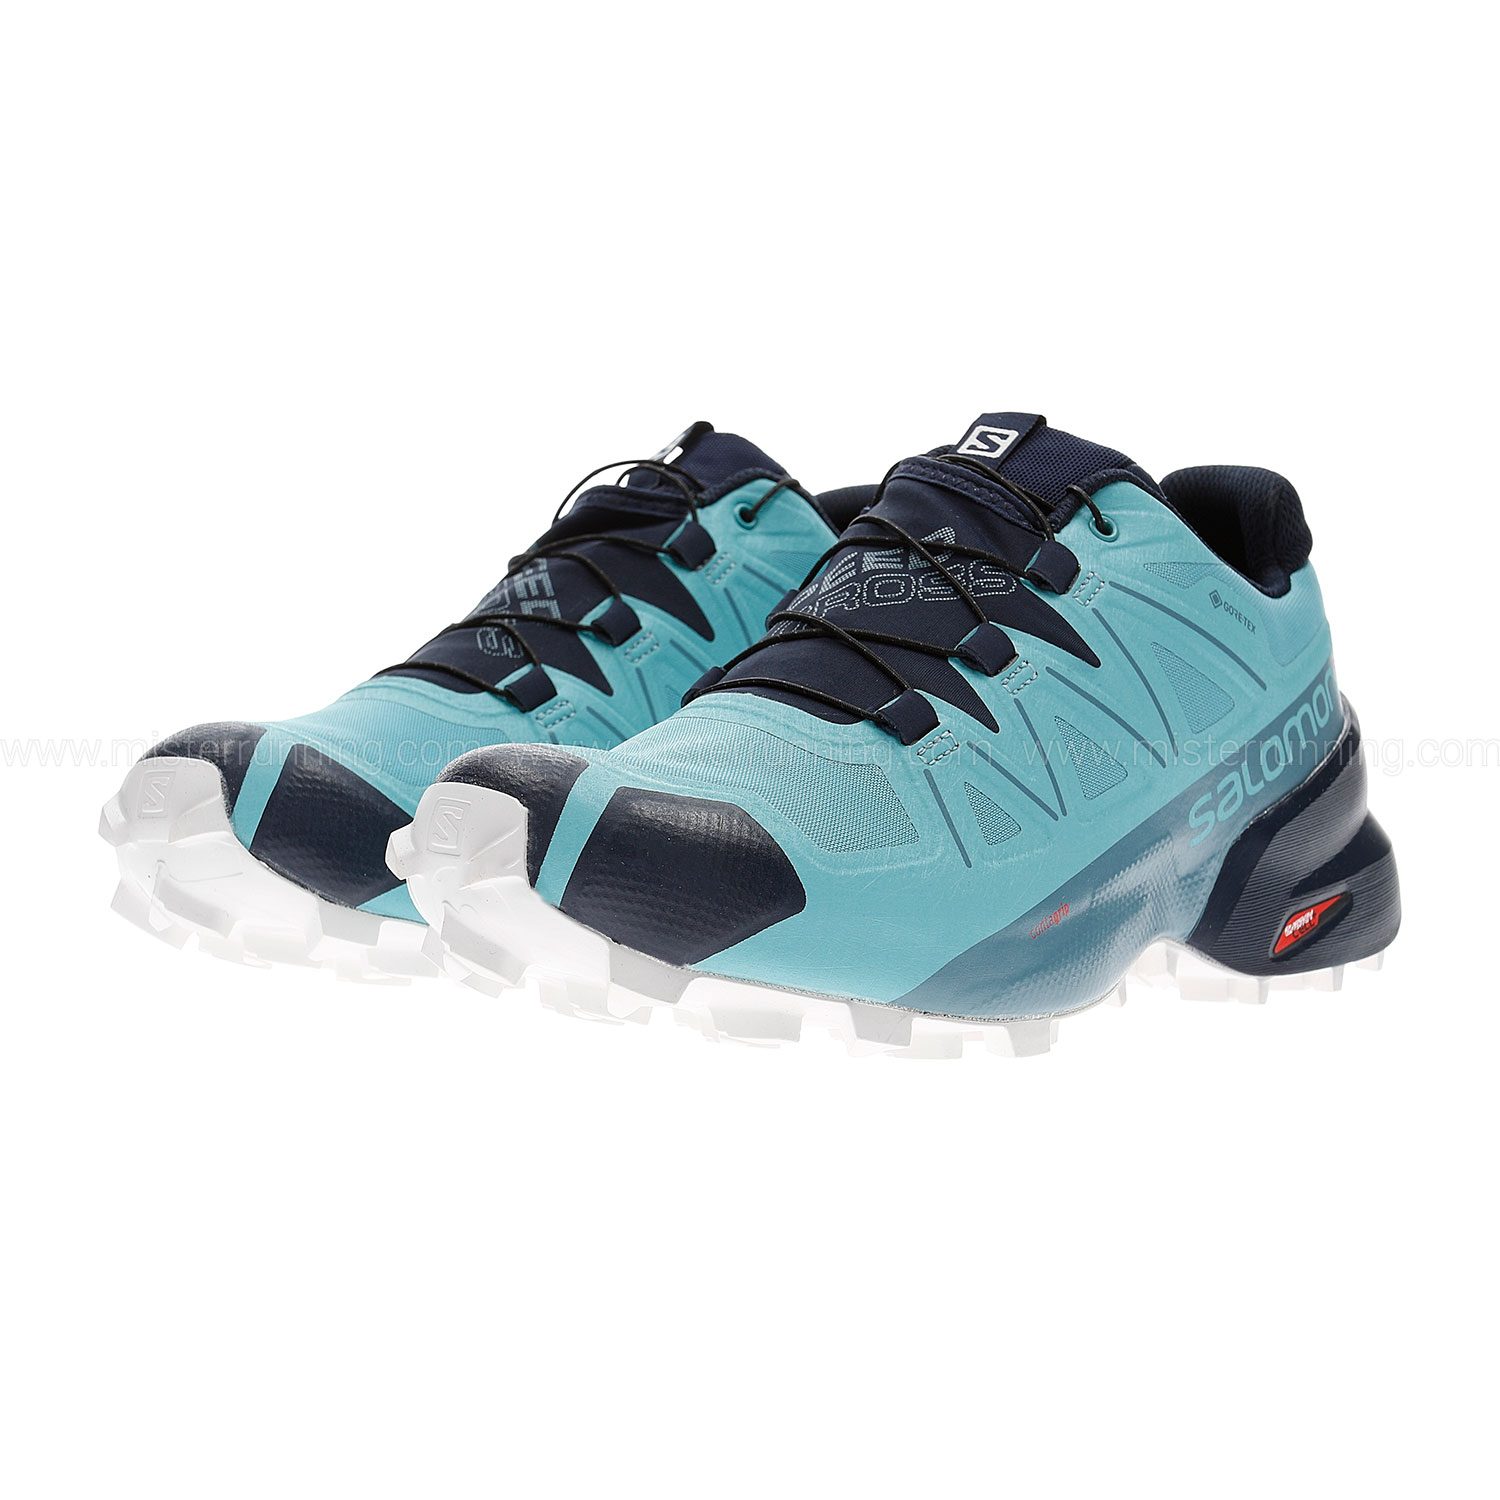 Salomon Speedcross 5 GTX - Meadowbrook/Navy Blazer/White San